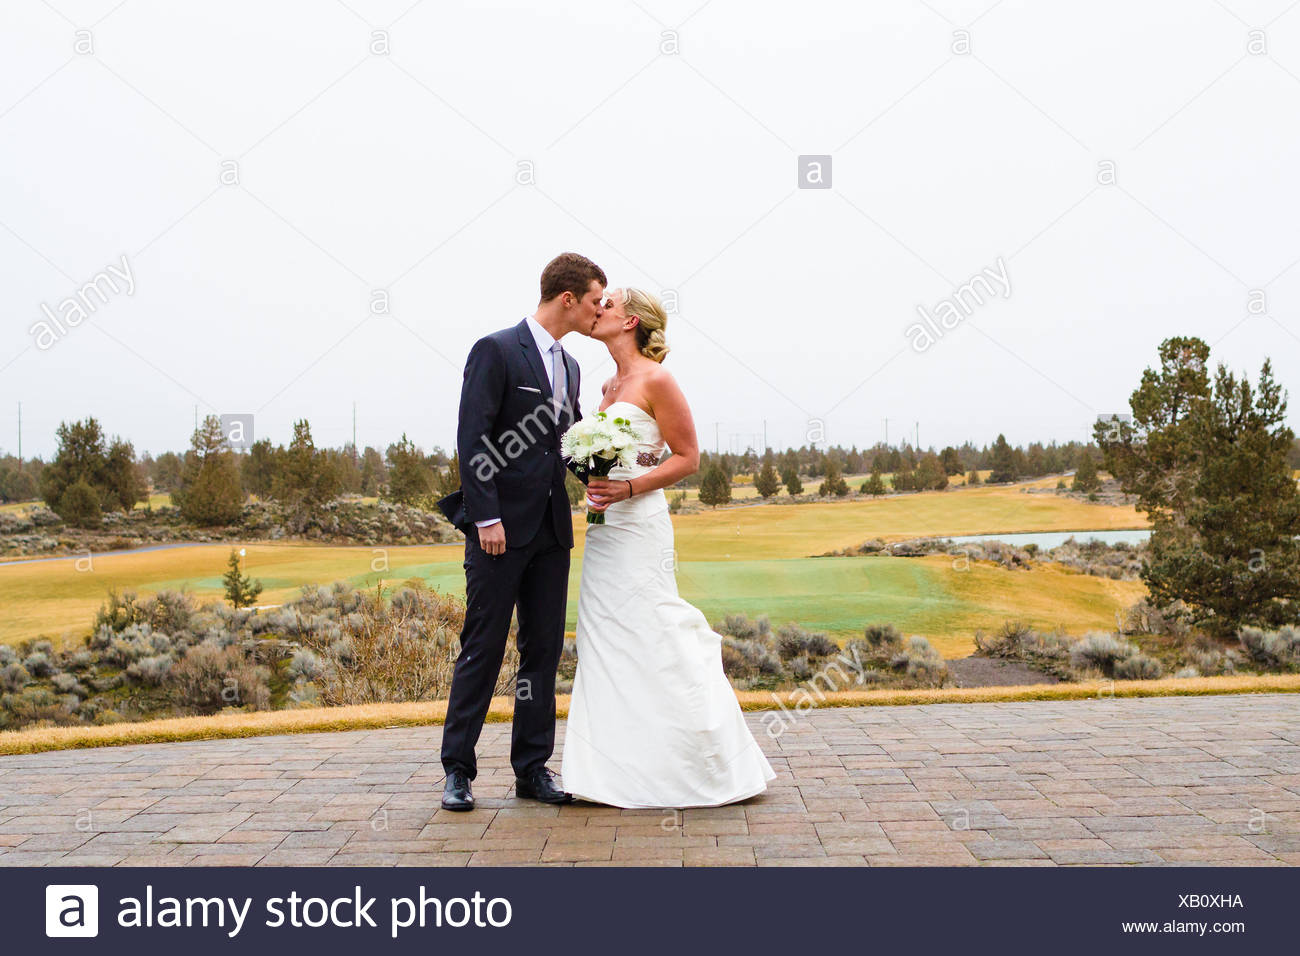 Bride and groom kissing on wedding day, Oregon, United States Stock Photo